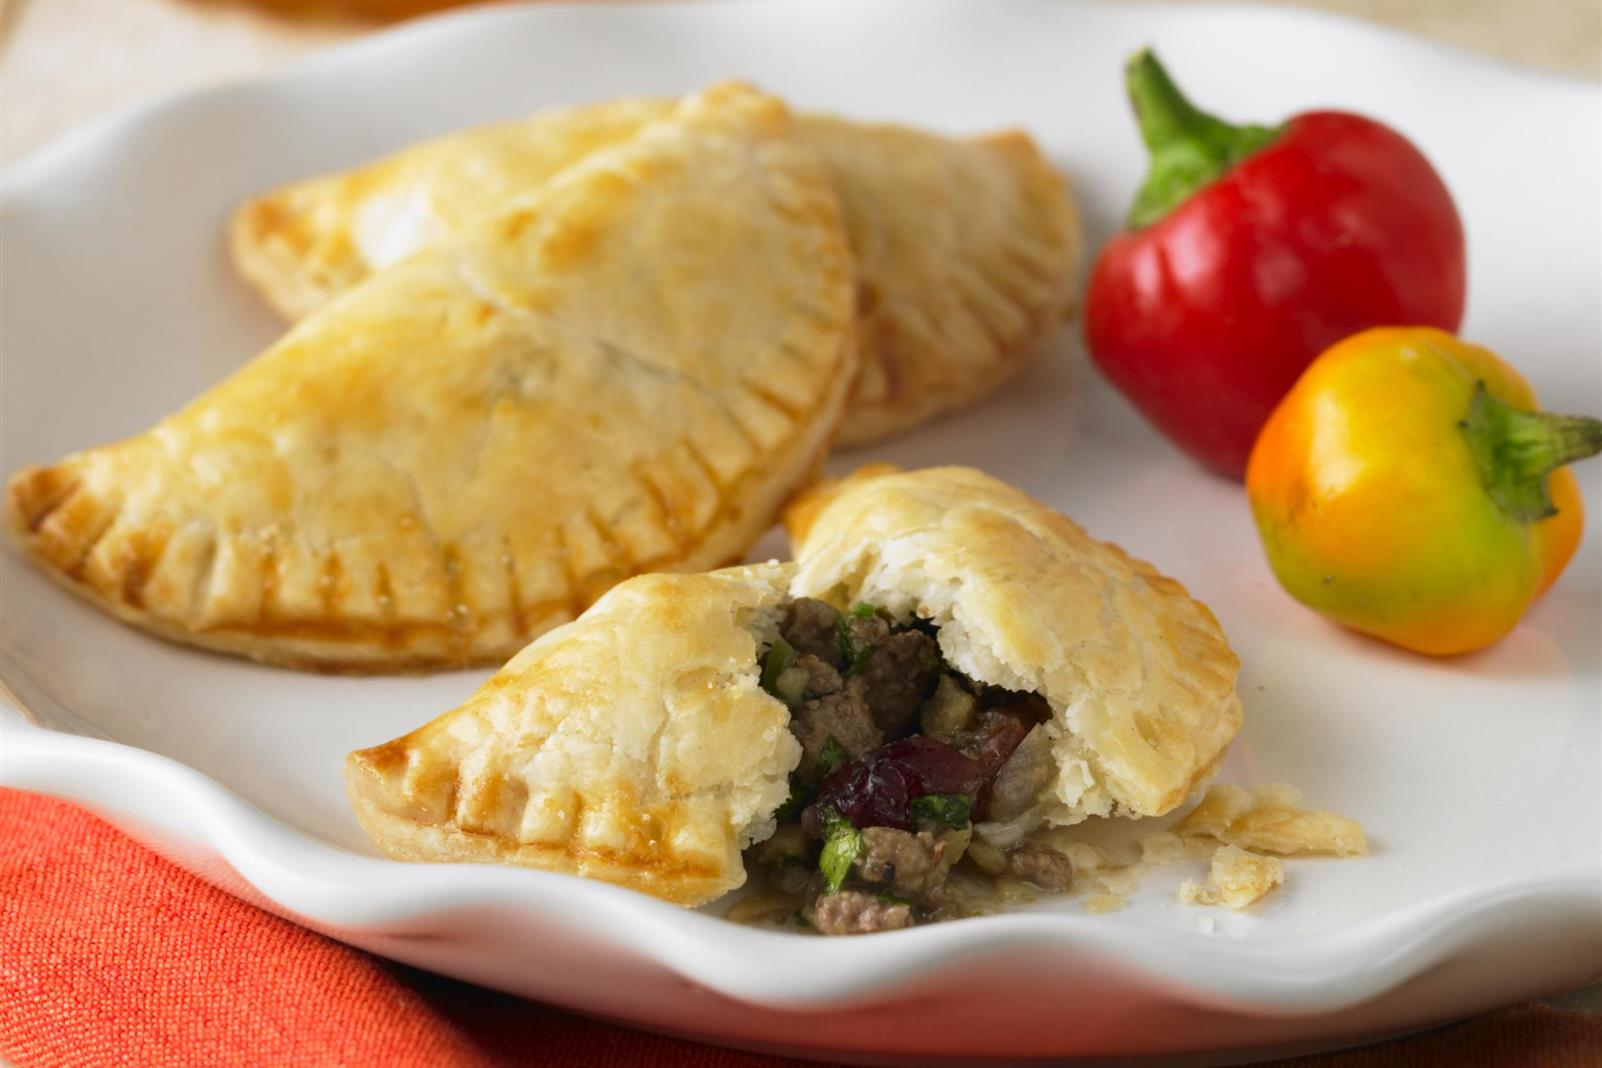 Beef Empanadas with Cranberries